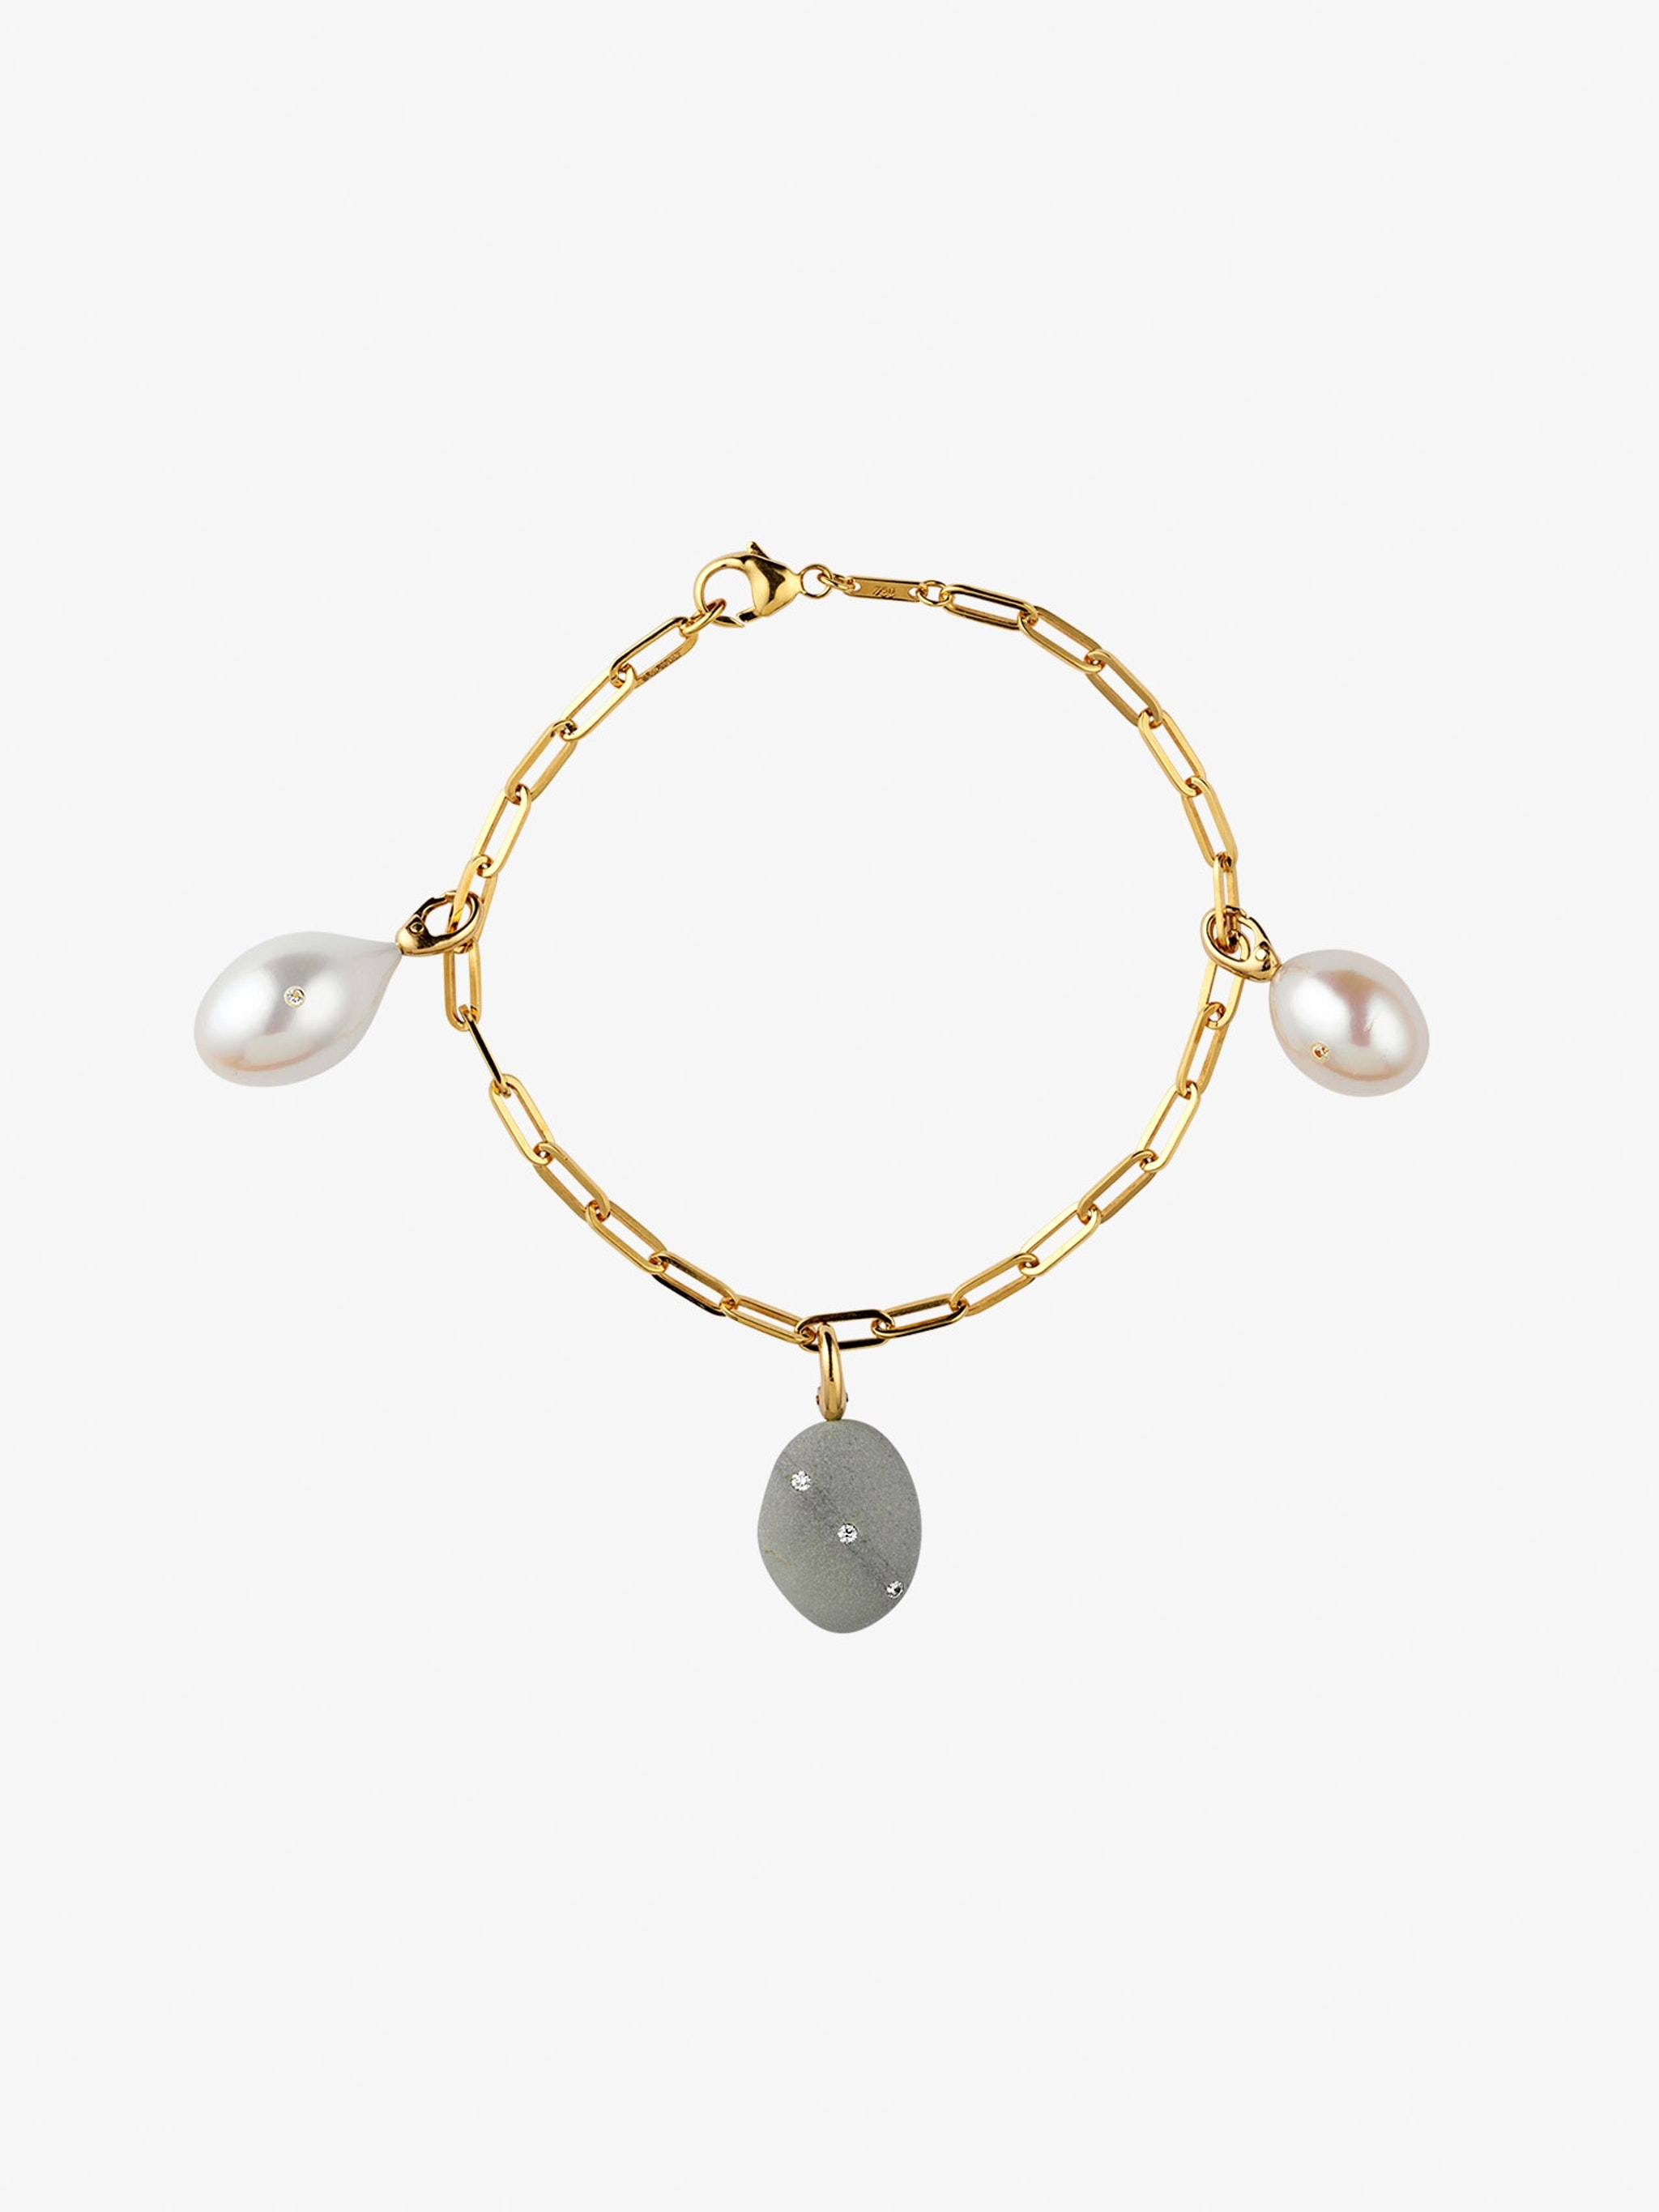 Tranquility gold bracelet with pearls, diamonds and rubies photo 1